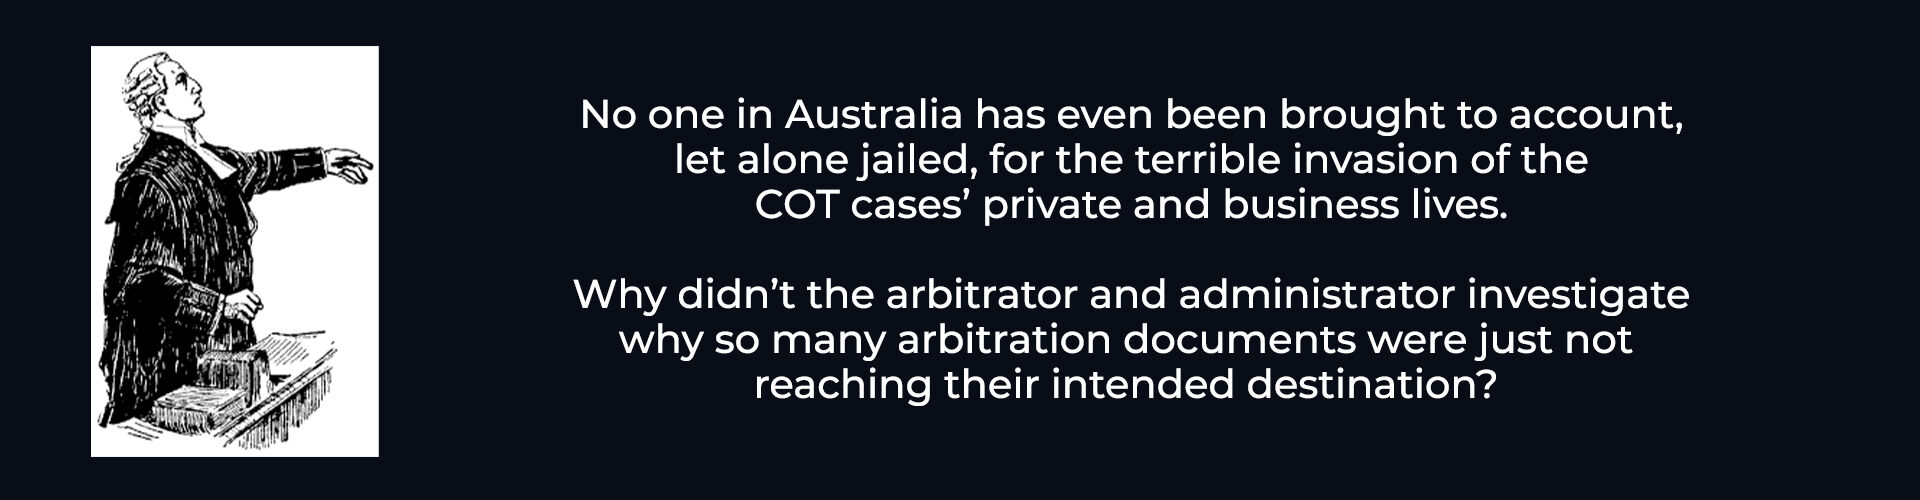 Absent Justice - Invasion of COT Cases Lives